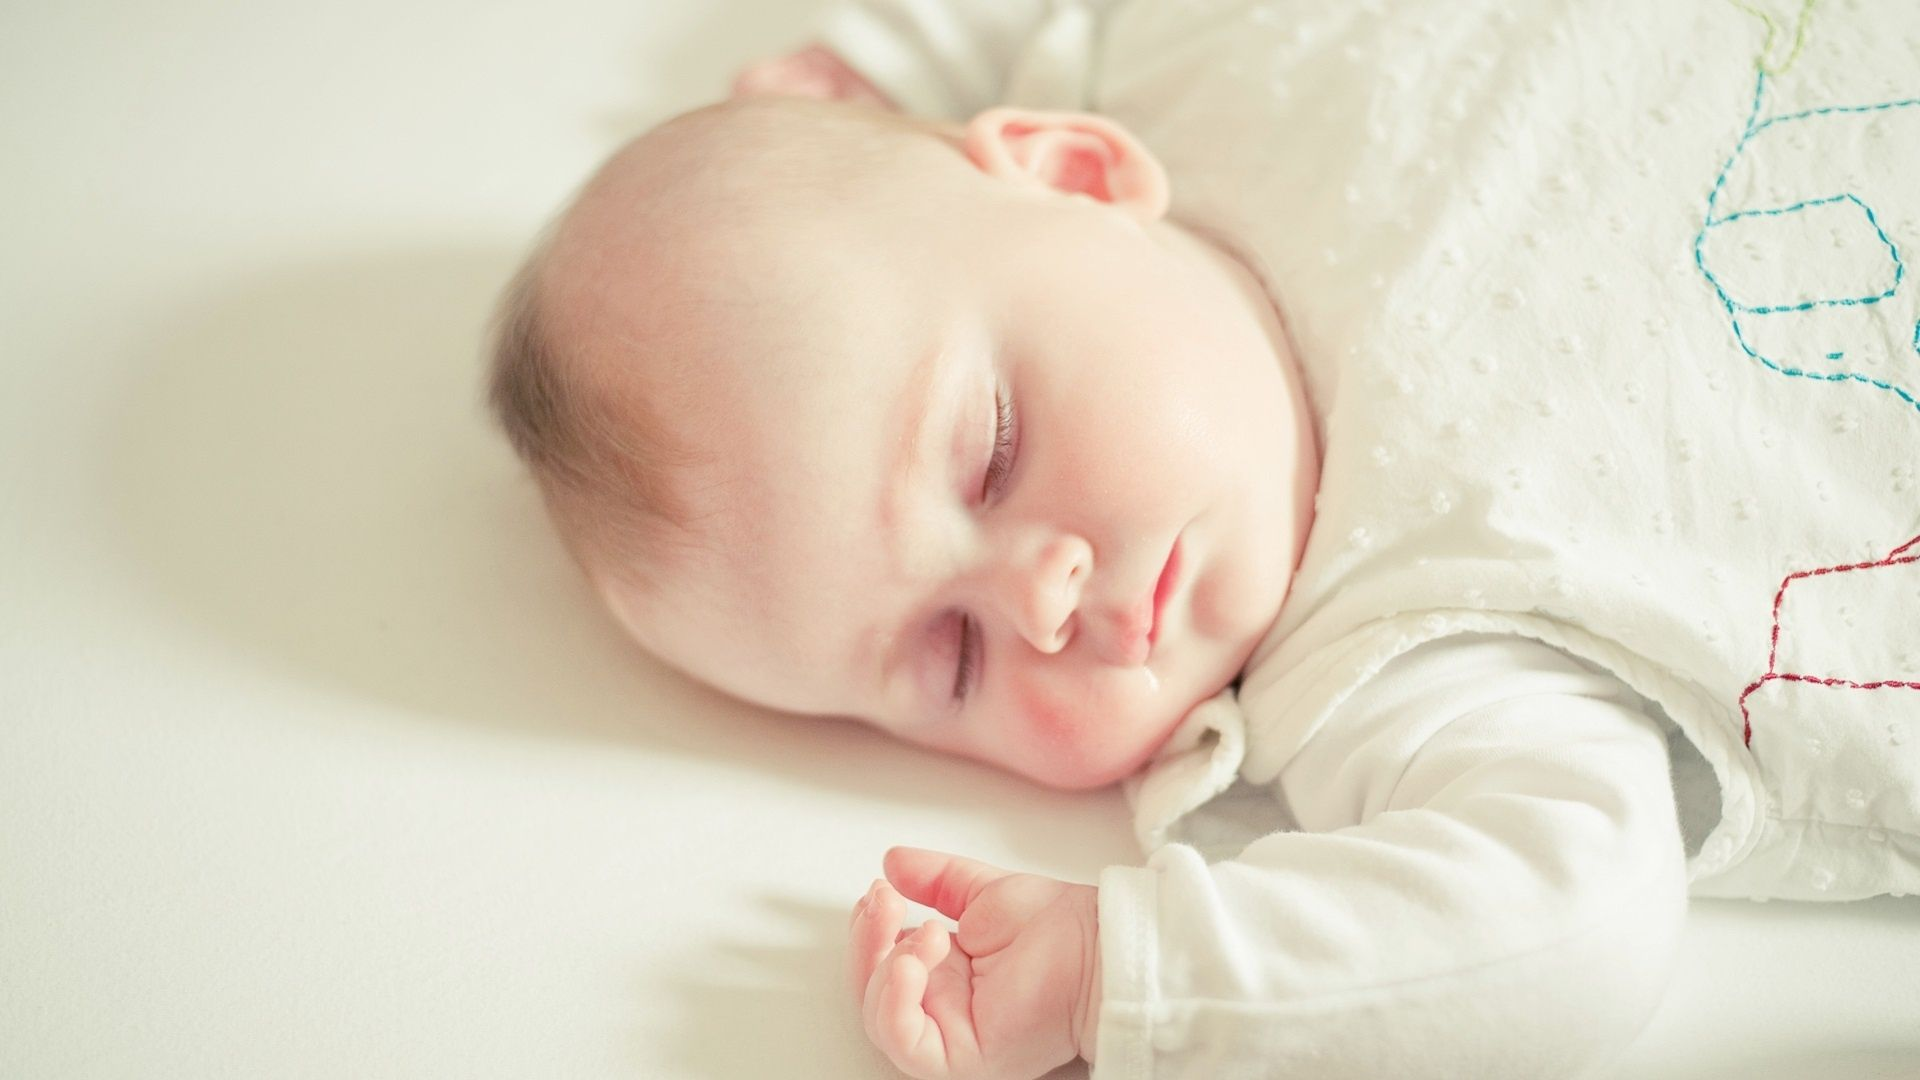 hd wallpaper cute sleeping baby | successful on-line business is